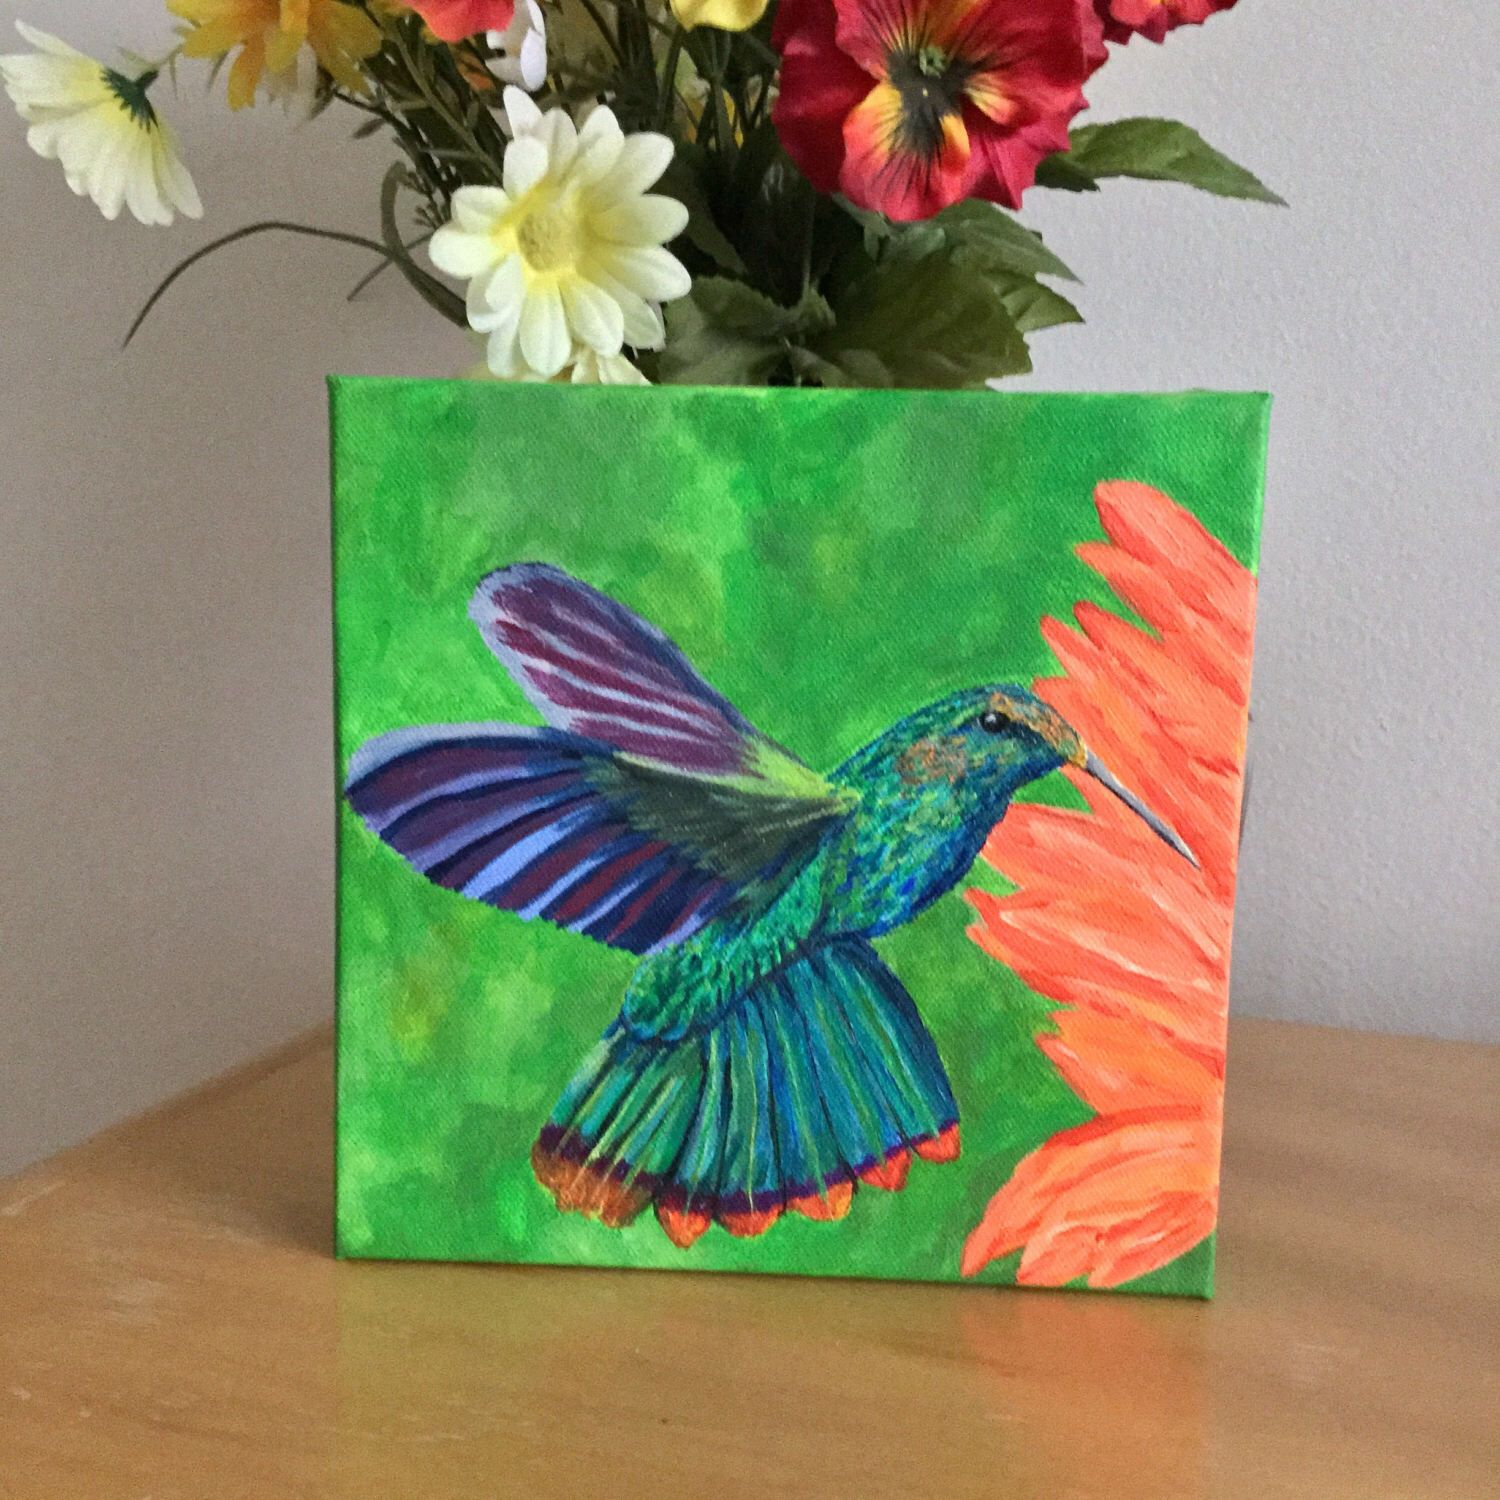 Stunning Original Hummingbird Acrylic Painting On Gallery Deep Canvas Beautiful